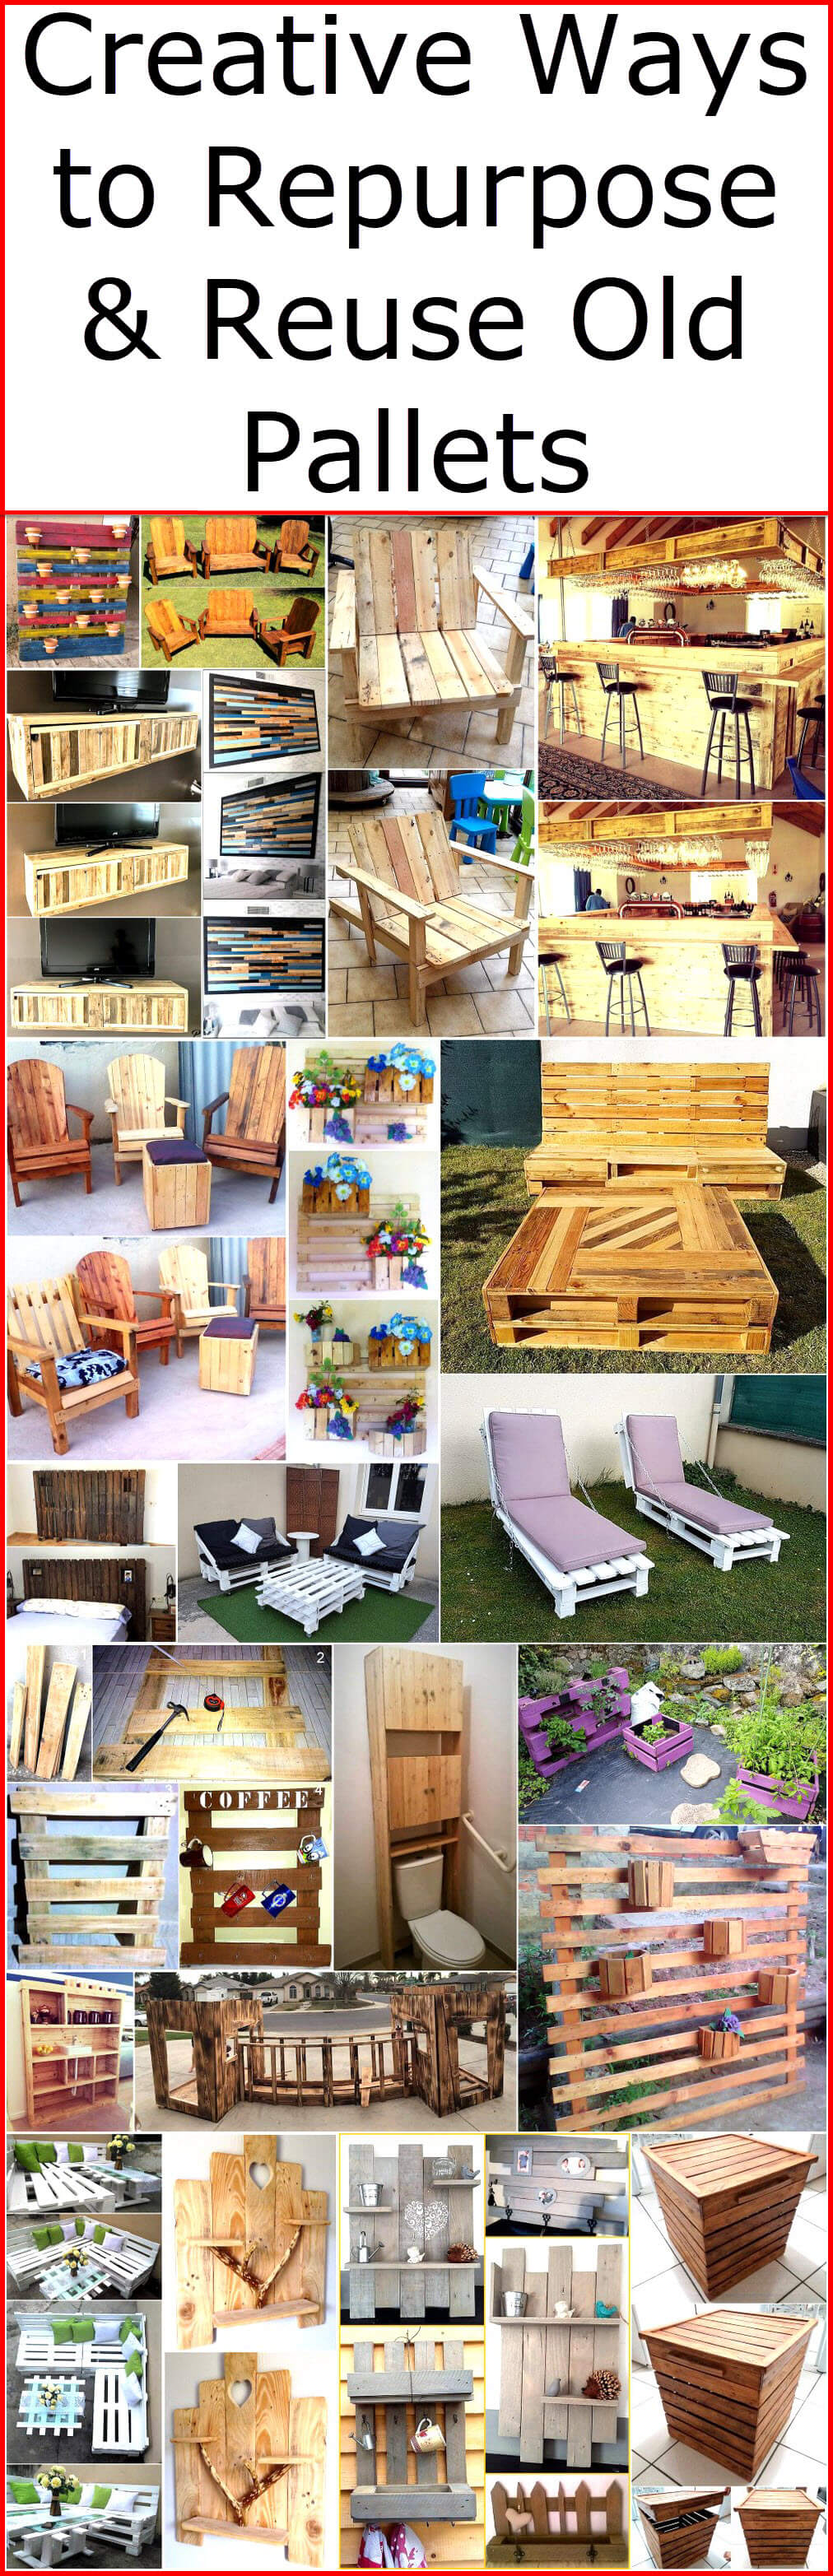 creative ways to repurpose reuse old pallets wood pallet furniture - Reuse Repurpose